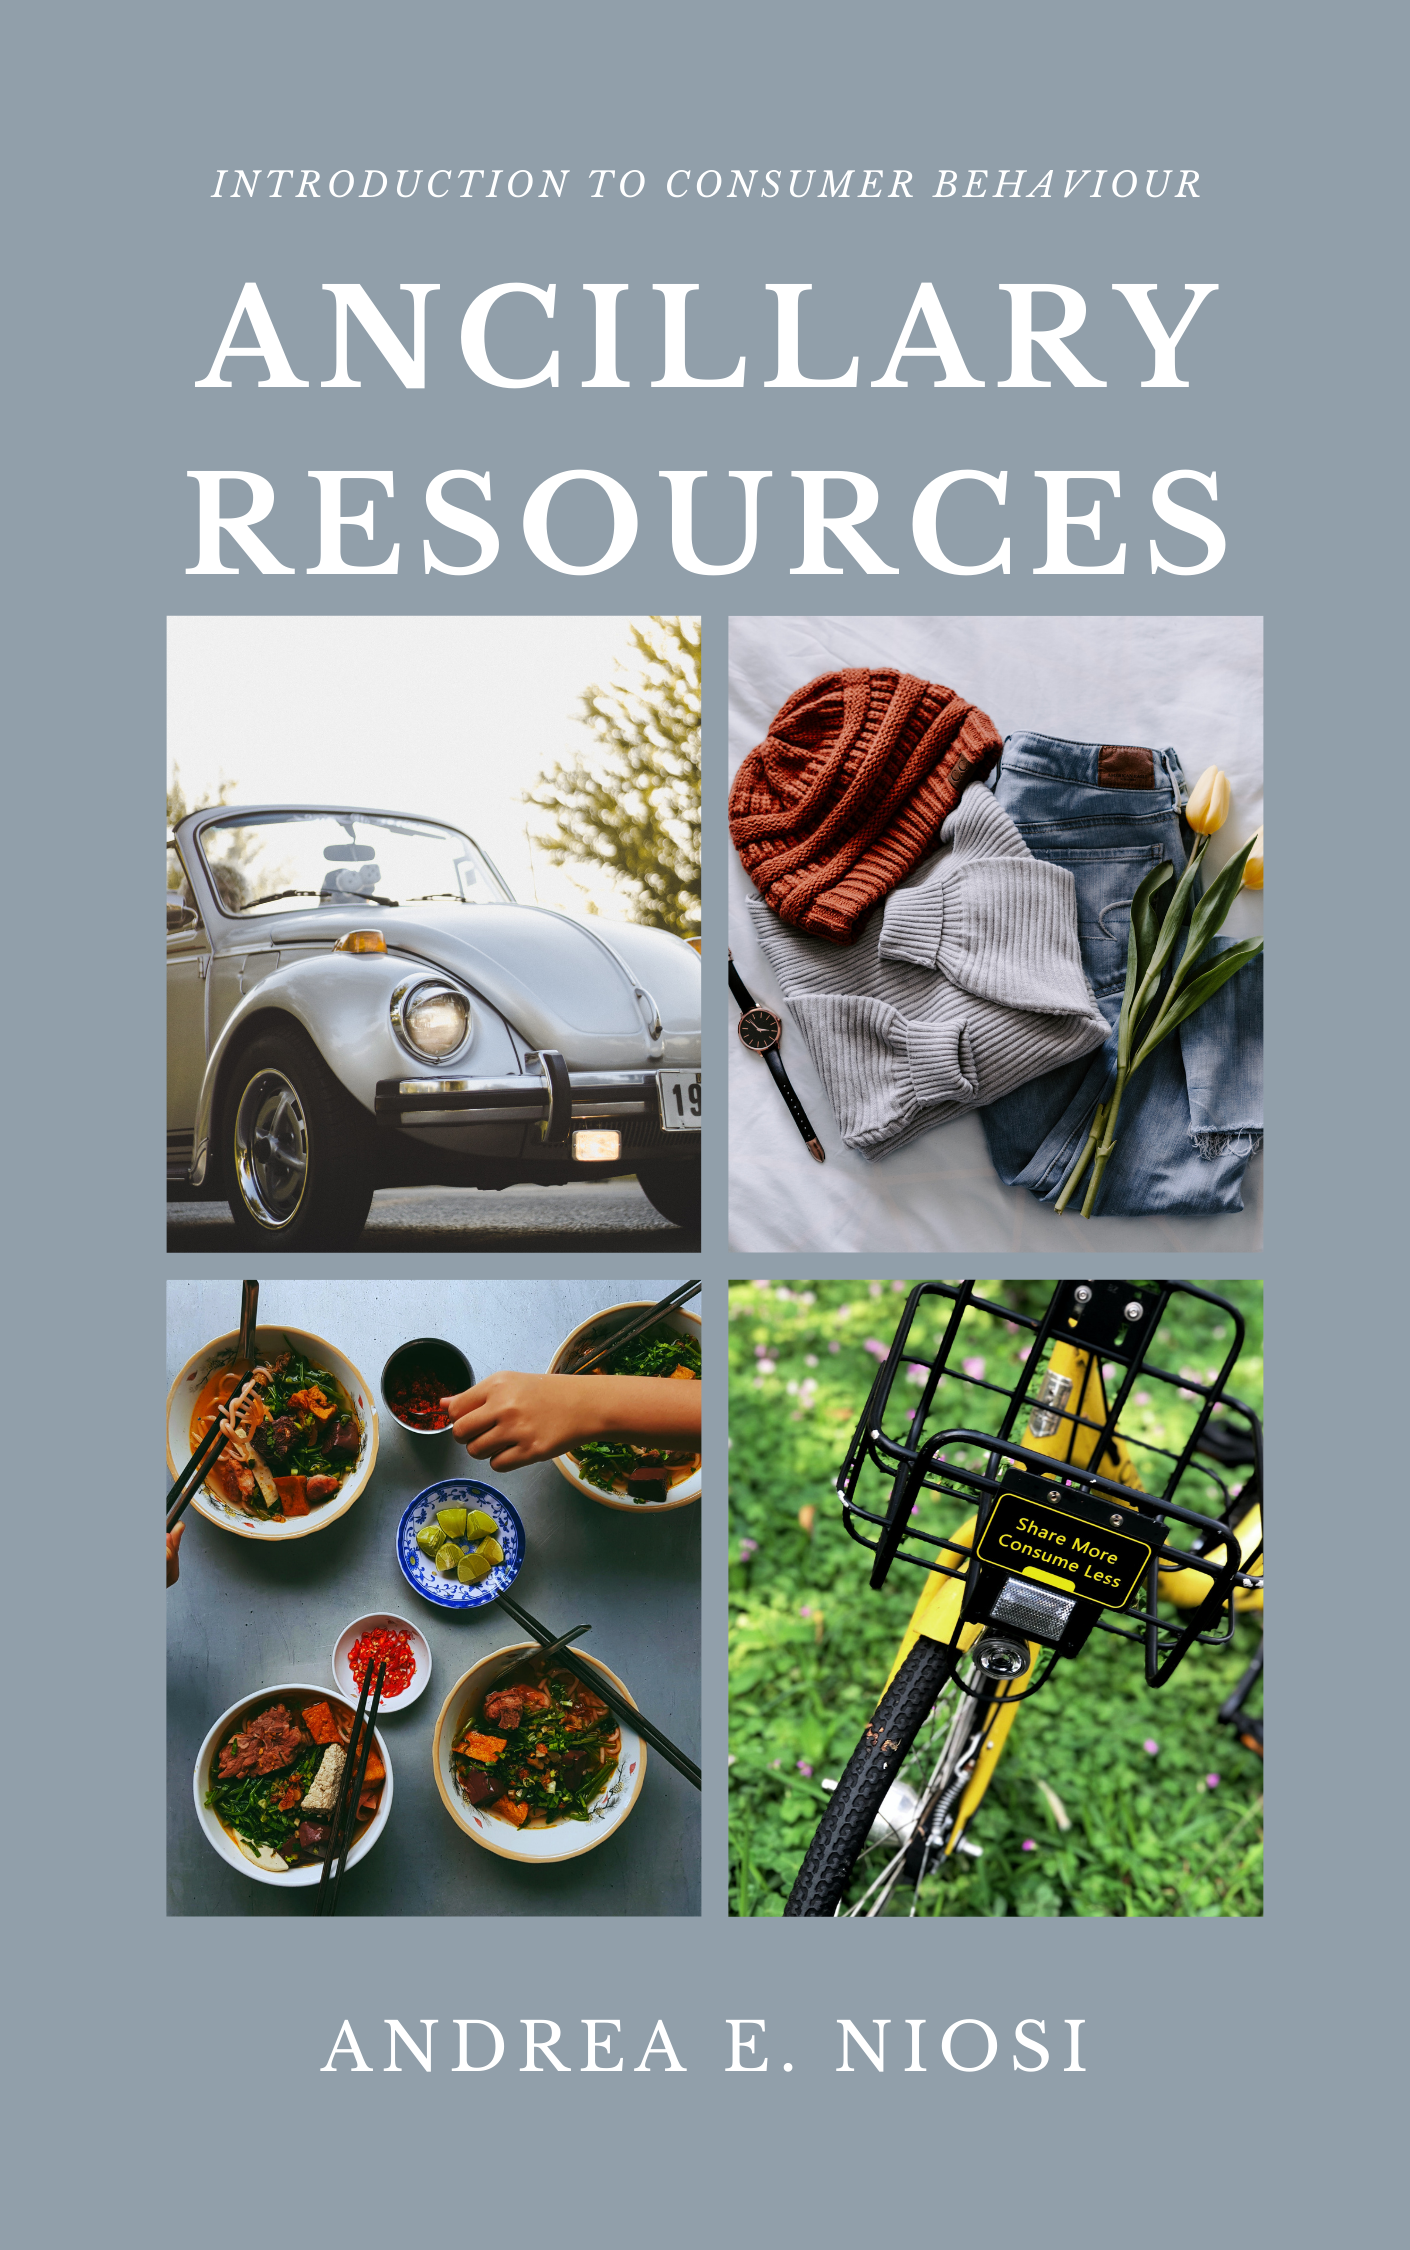 Cover image for Introduction to Consumer Behaviour Ancillary Resources